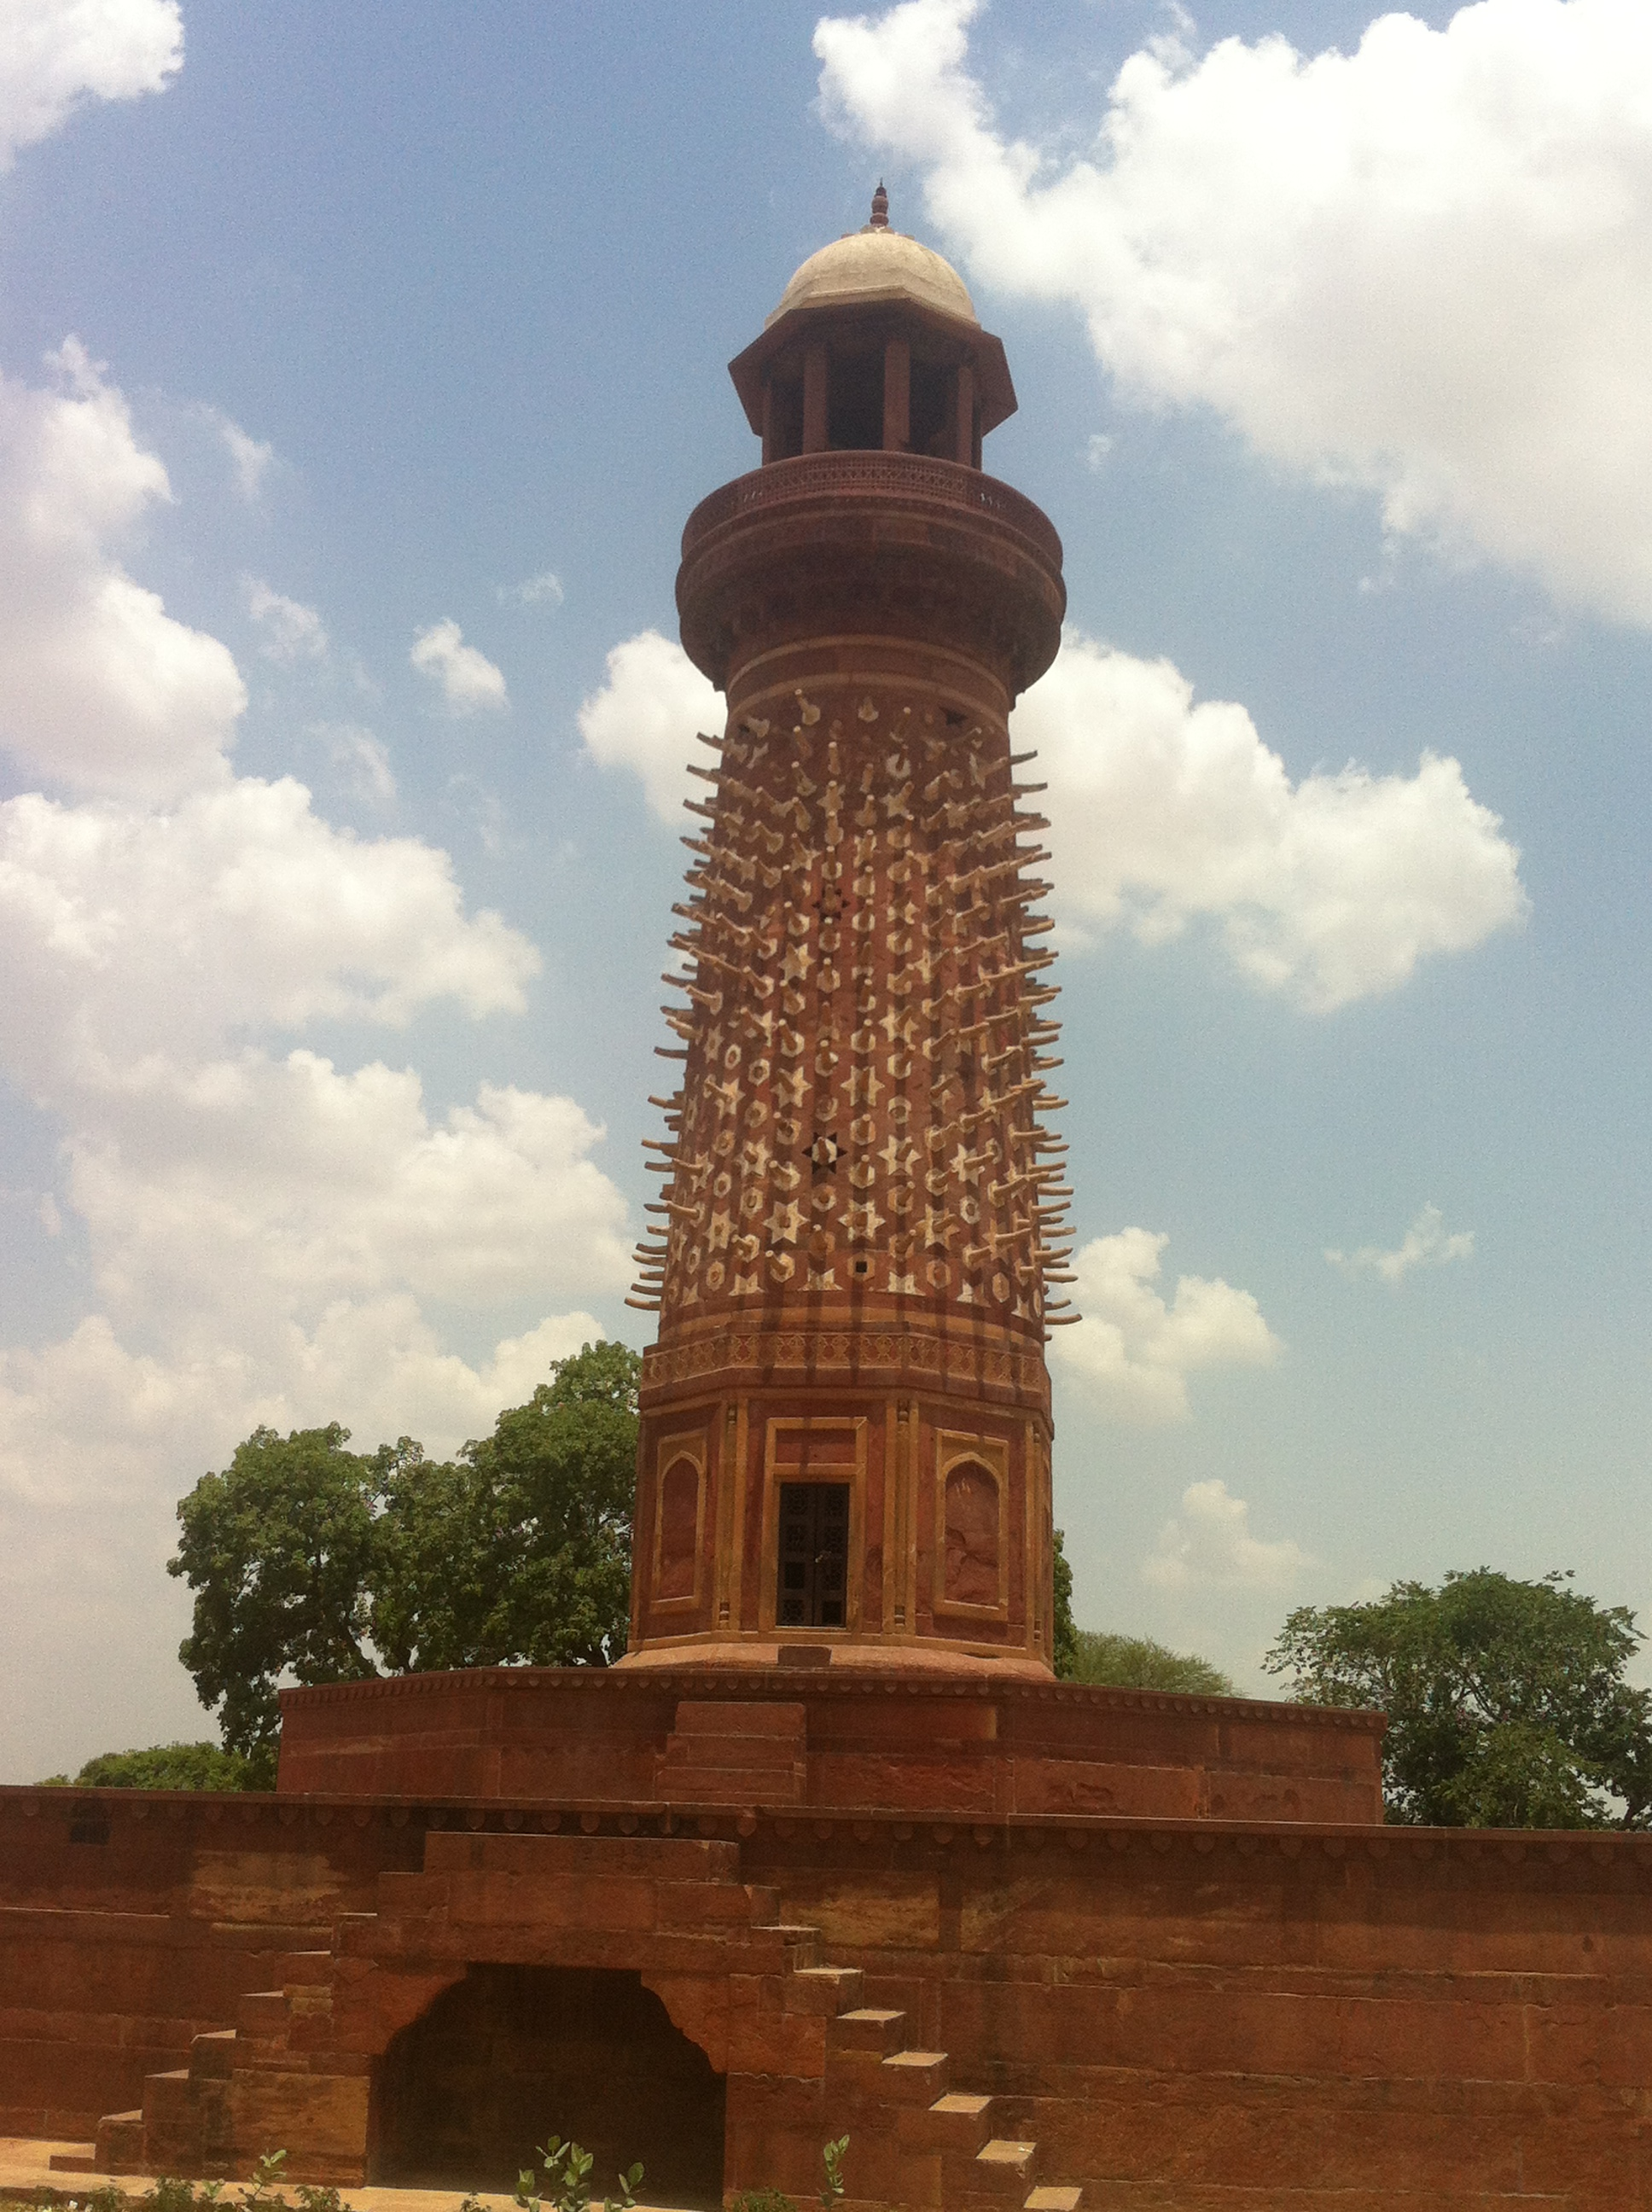 An idiots guide to visiting Fatehpur Sikri near Agra